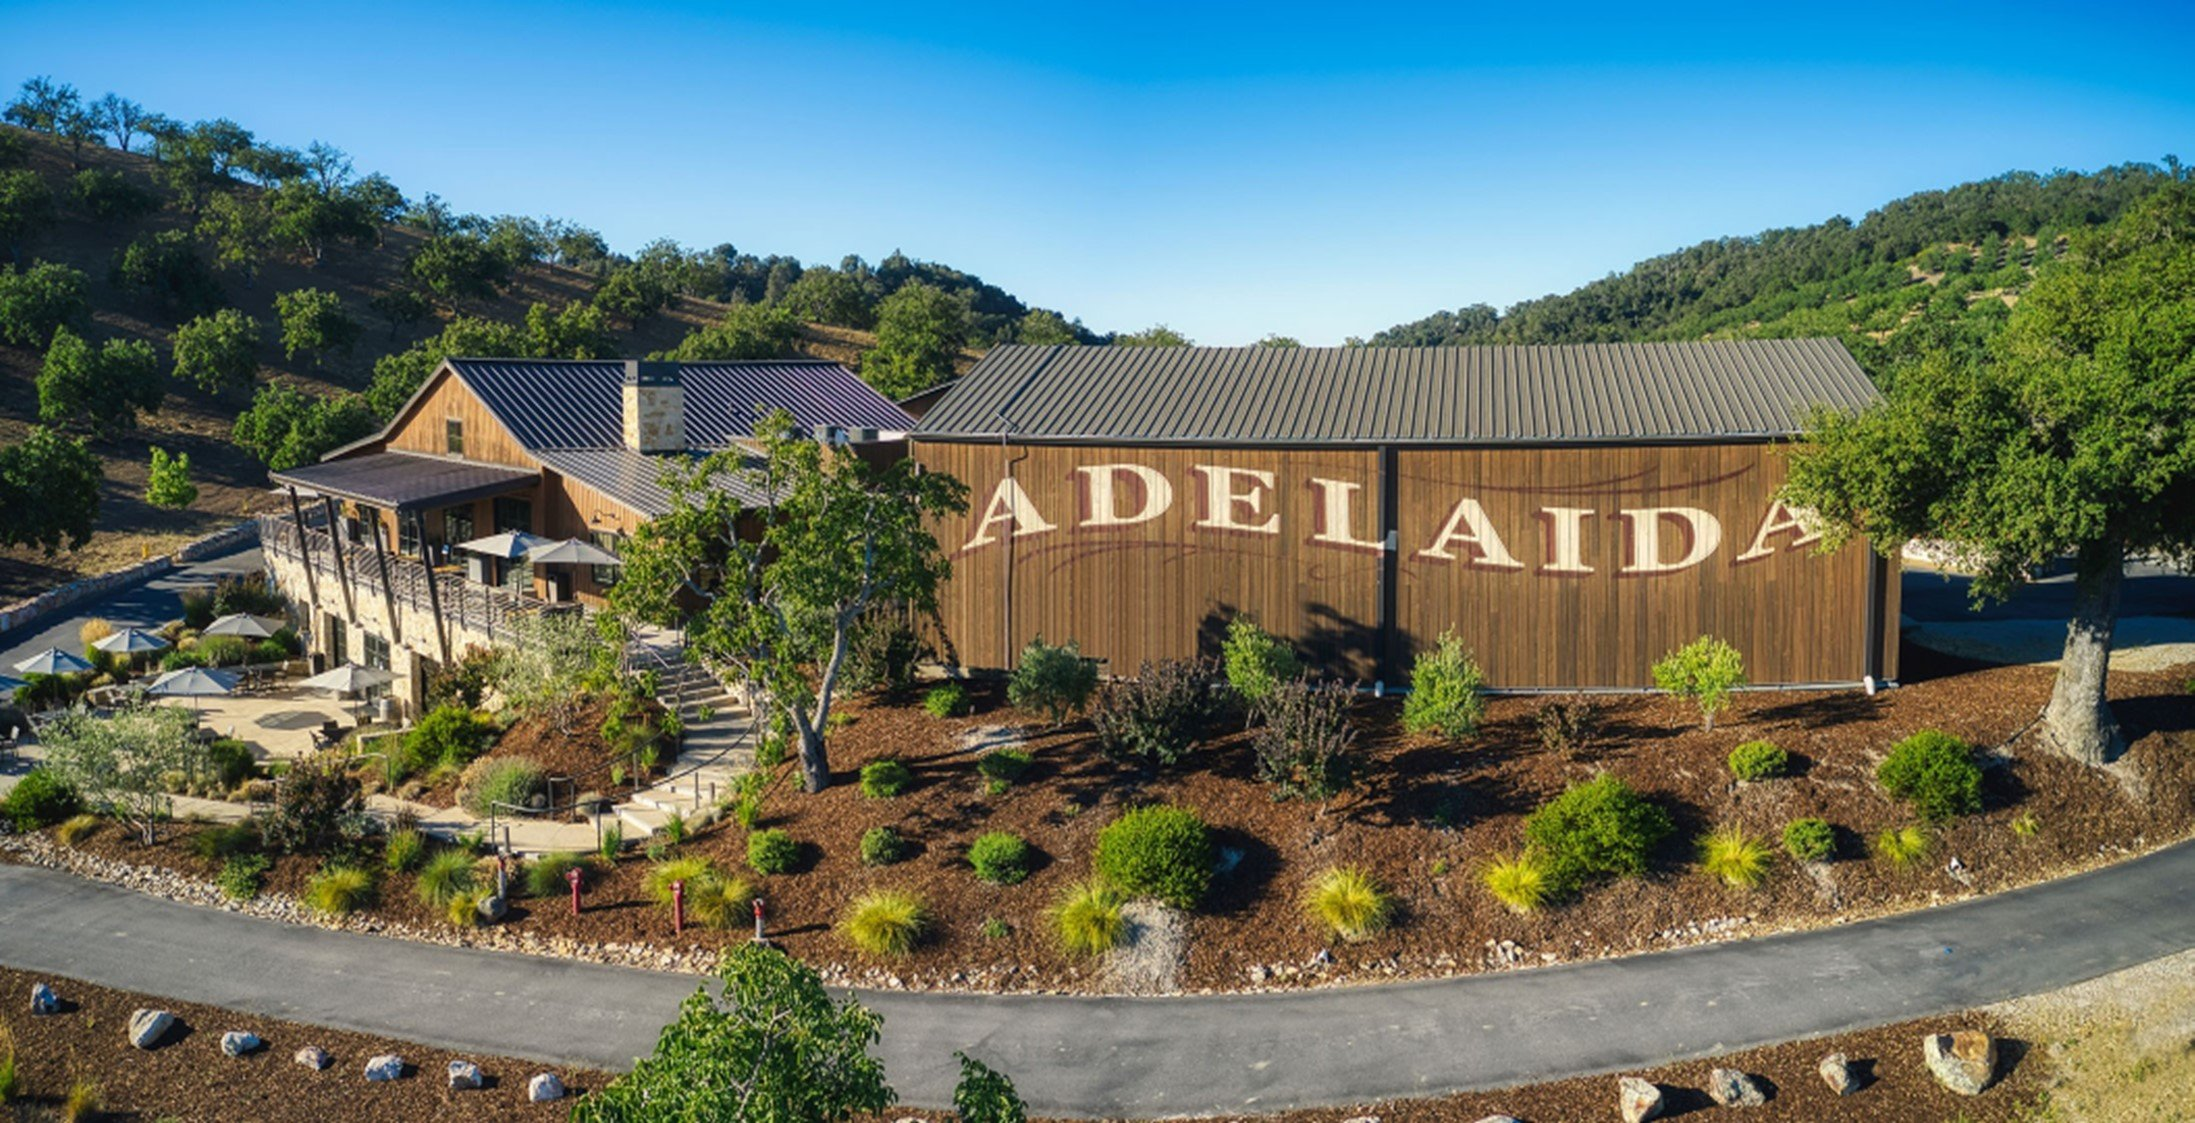 Adelaide WInery